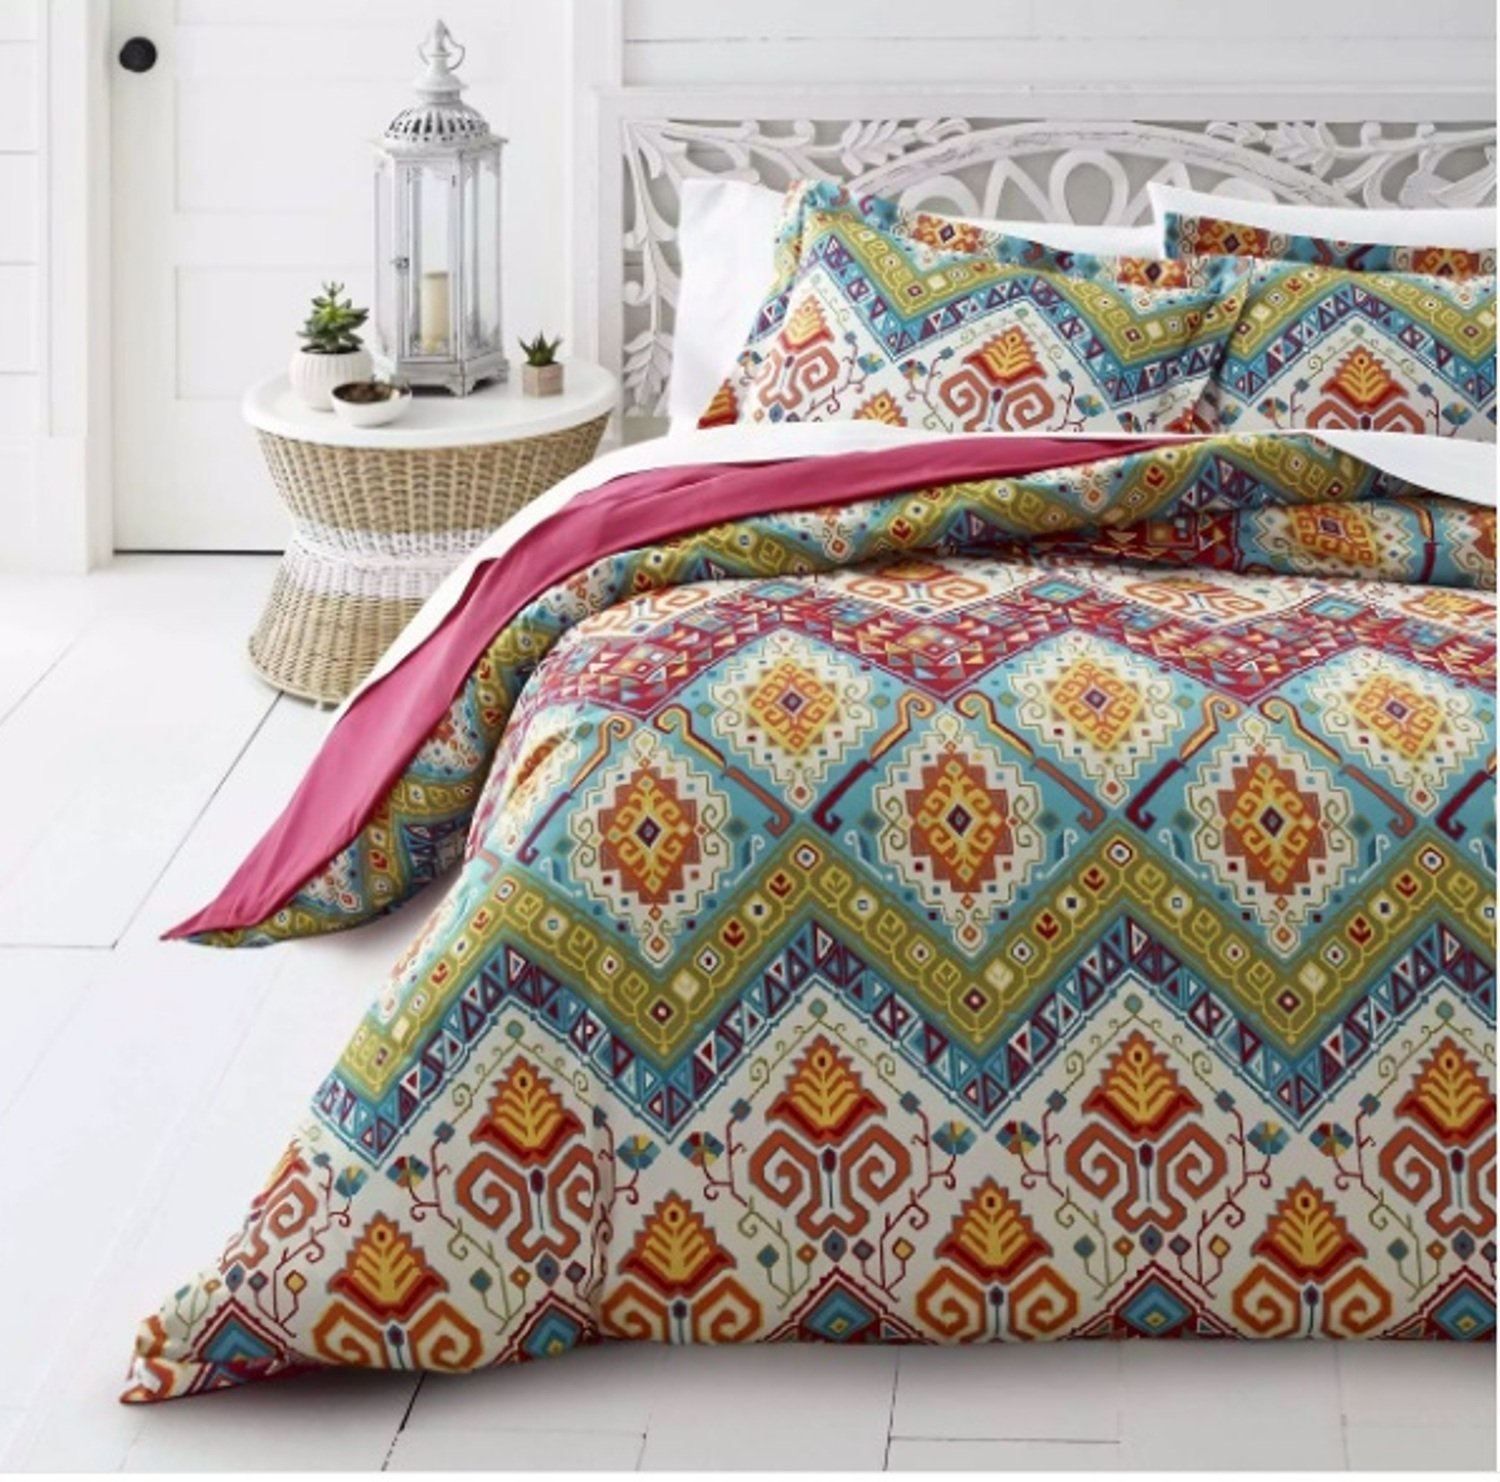 2 Piece Bohemian Moroccan Inspired Duvet Cover Set Twin Size, Featuring Reversible Colorful Geometric Medallion Diamond Design Bedding, Stylish Country Style Chic Bedroom Decor, Blue, Green, Multi